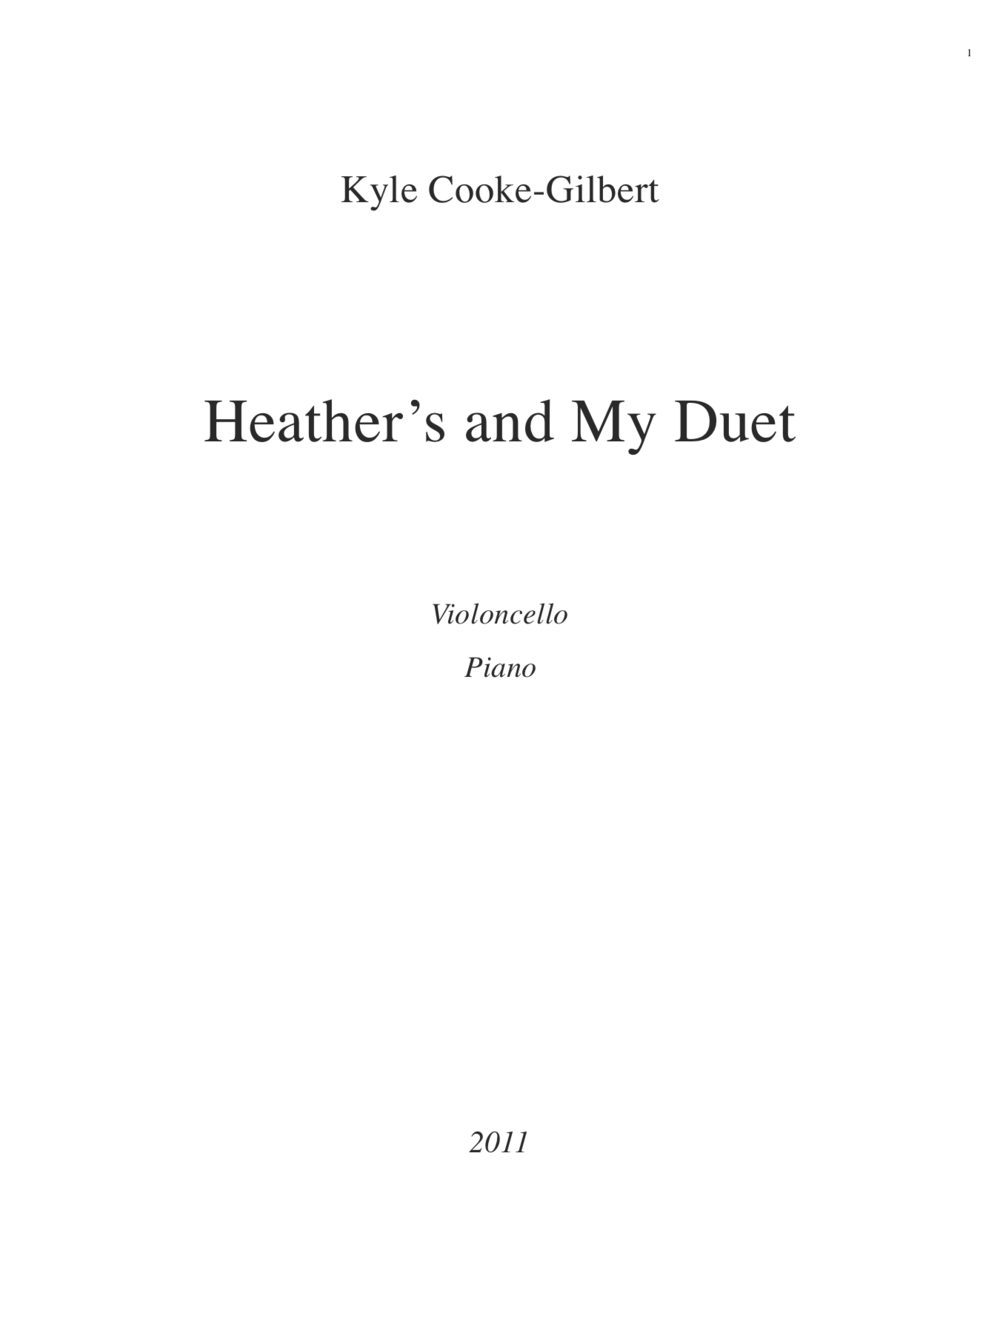 Heather's and My Duet.png